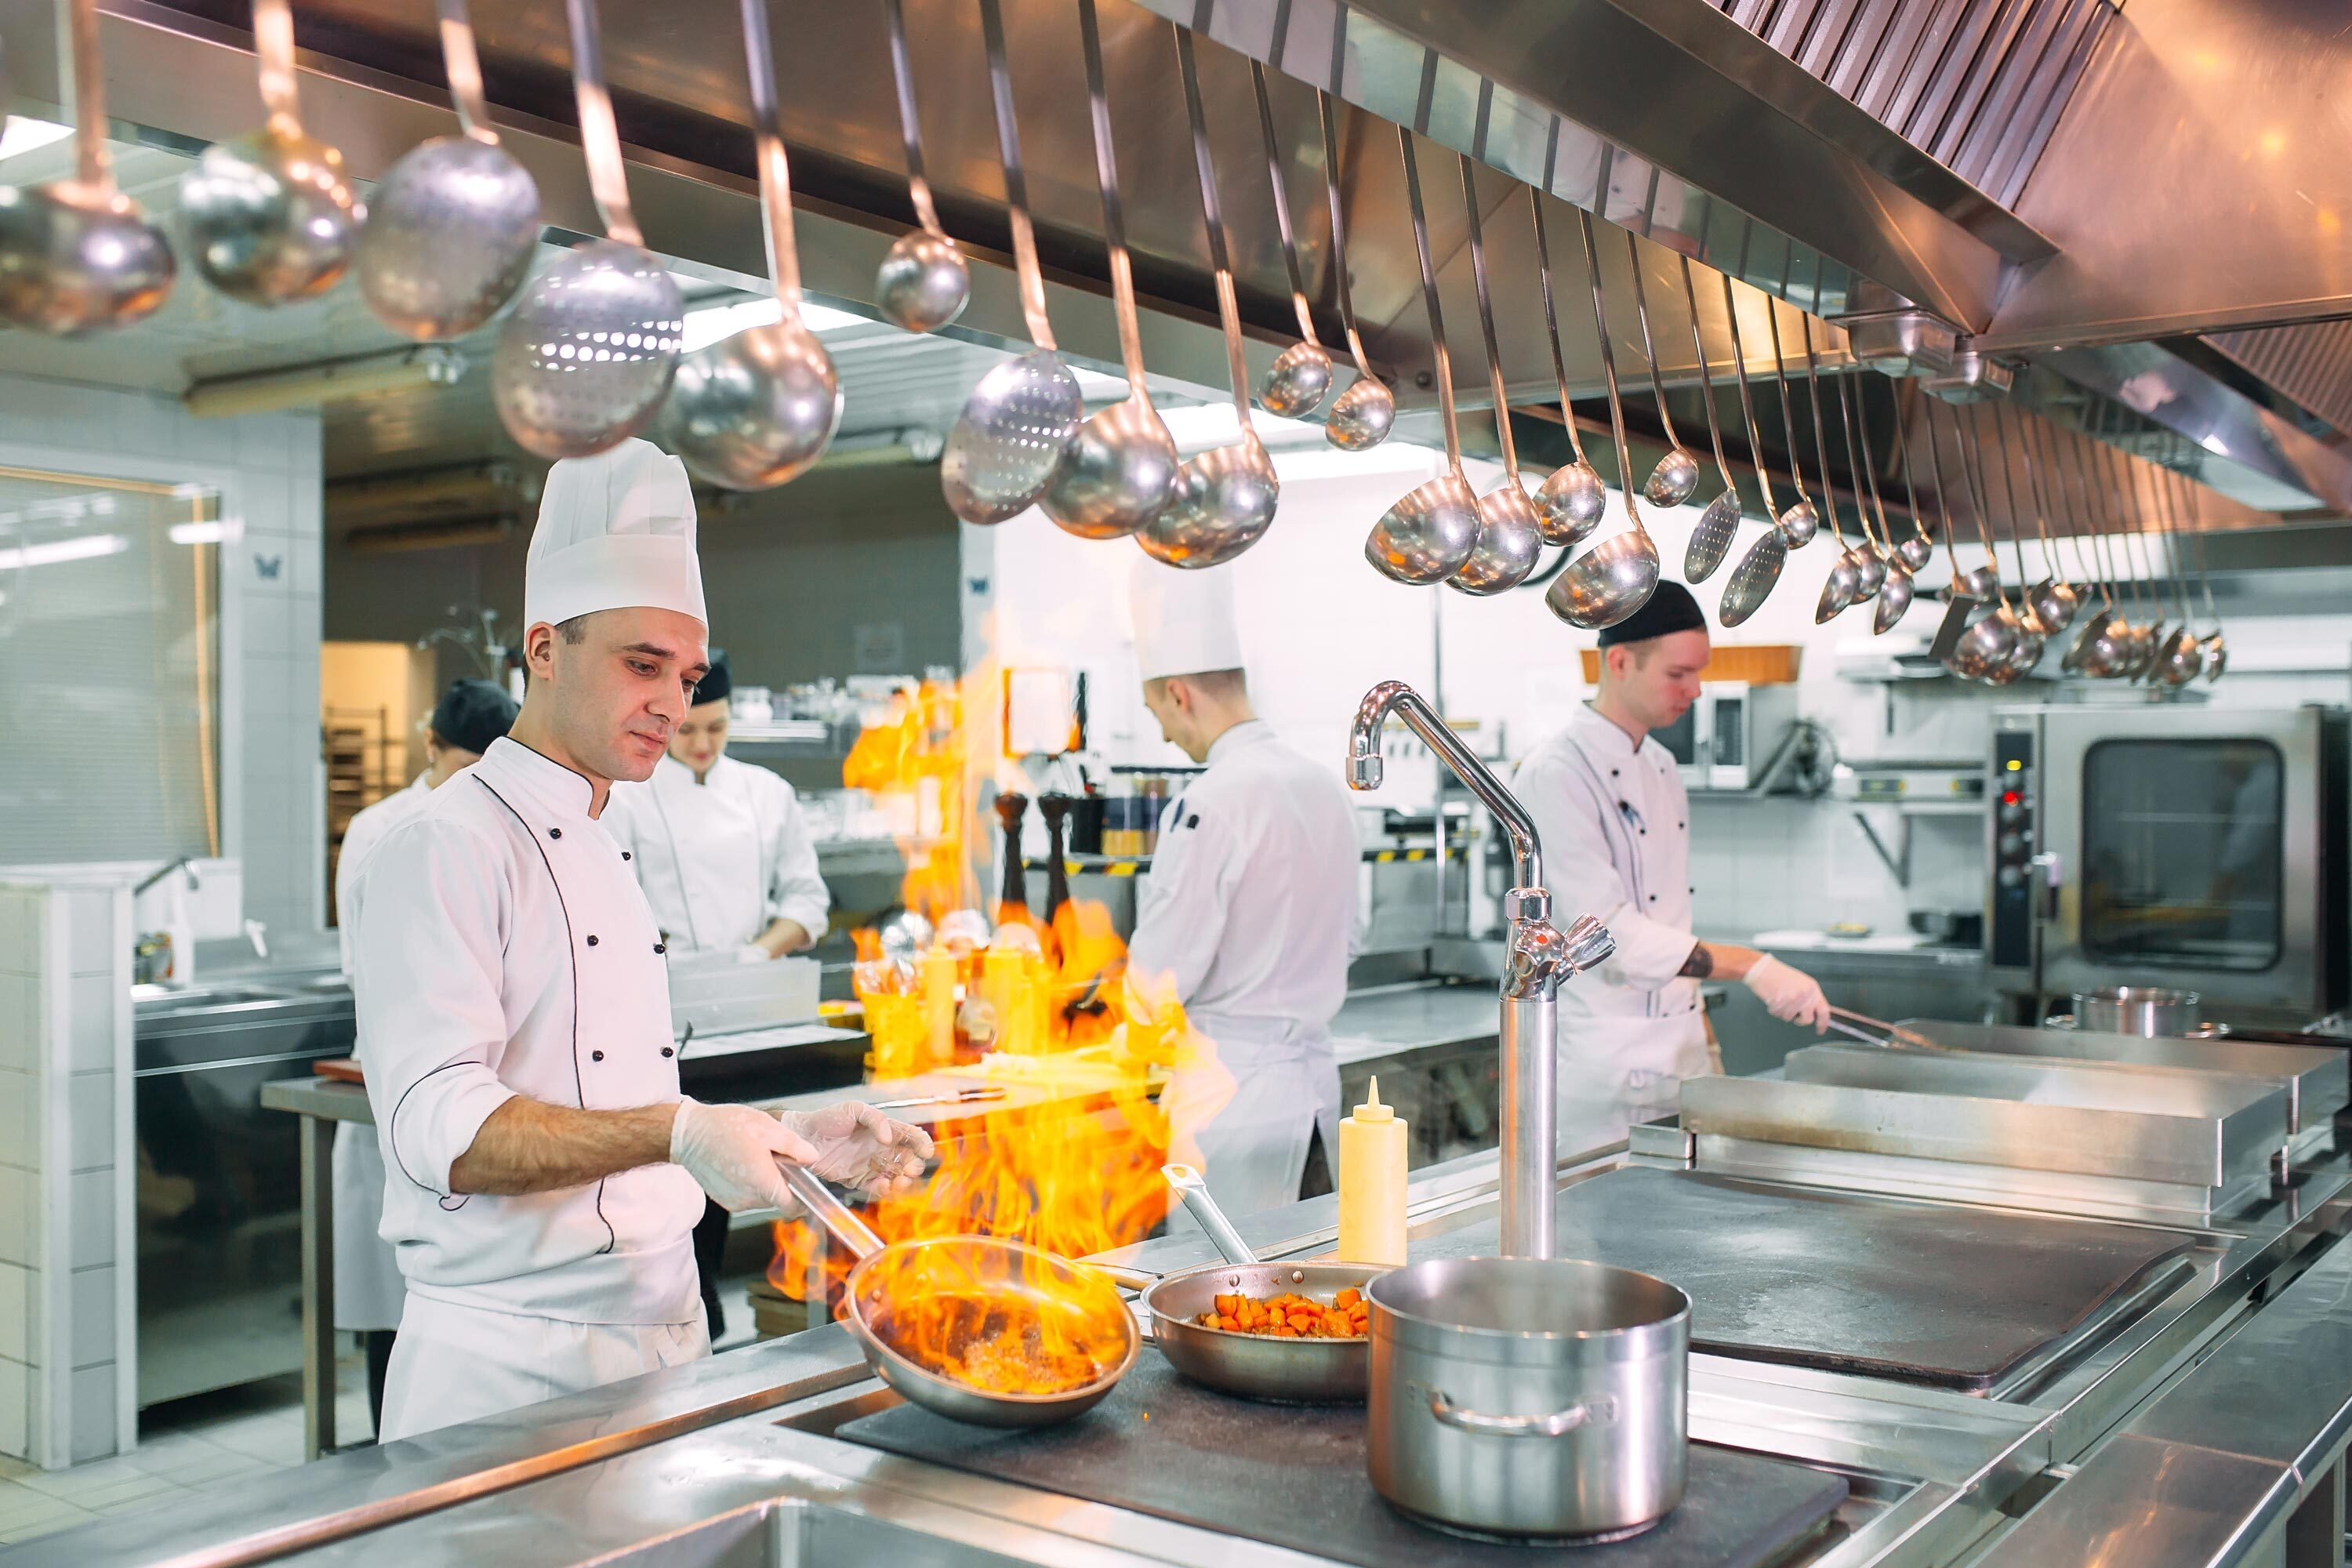 Cook brandishes frying pan with blazing flames in commercial kitchen| Delicious Data